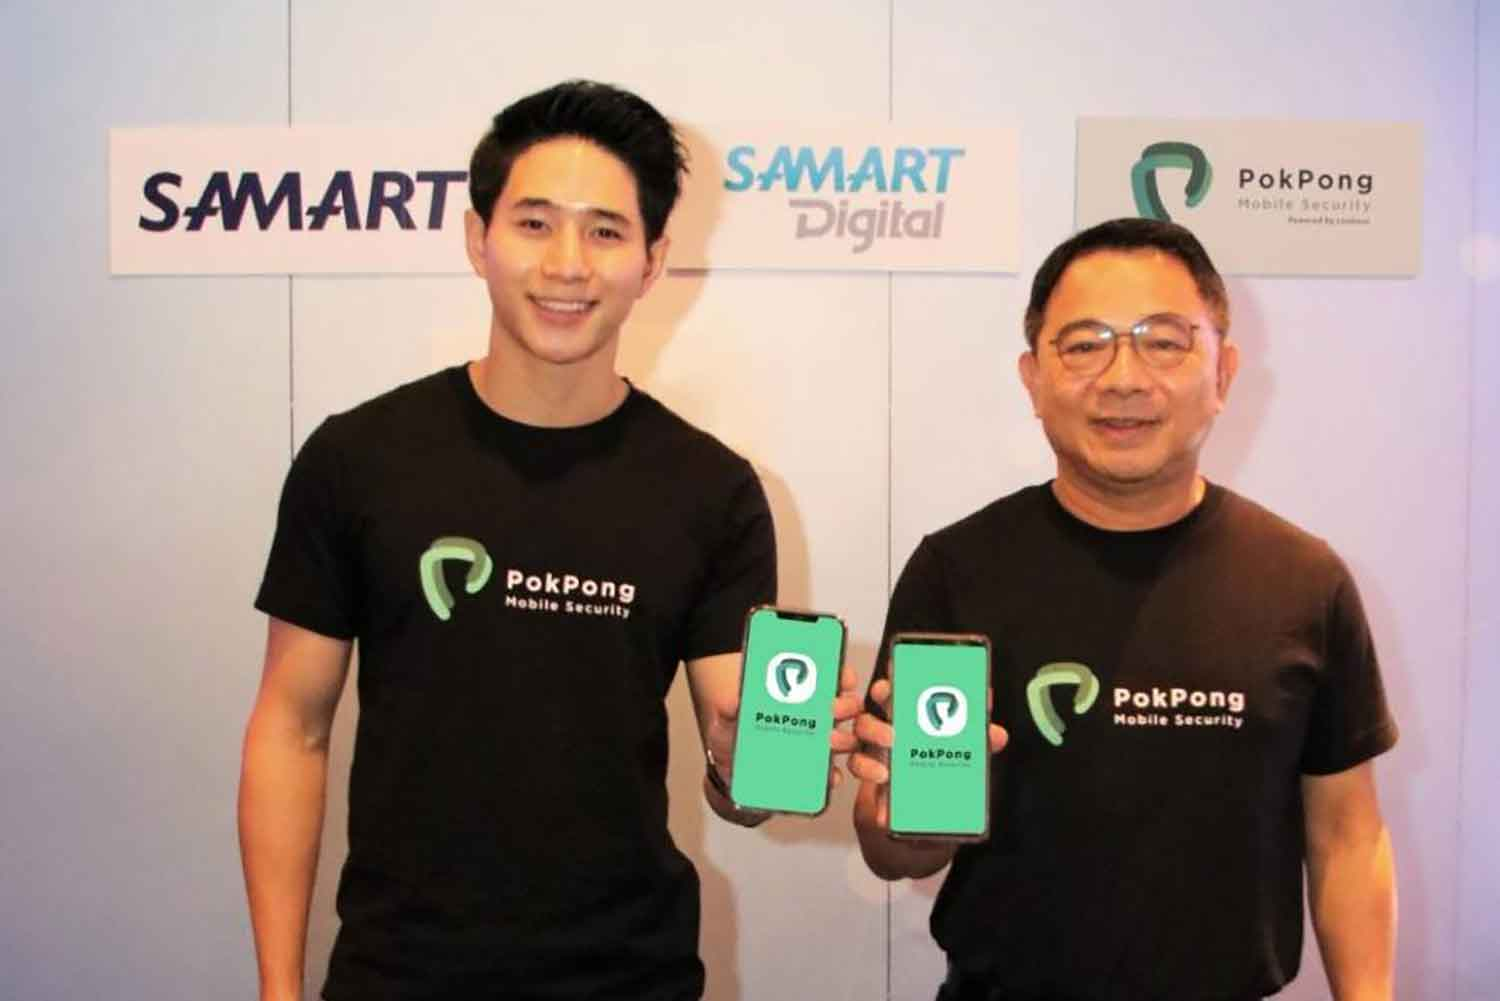 Mr Watchai, right, and Mr Ruttanun at the launch of mobile security app PokPong.